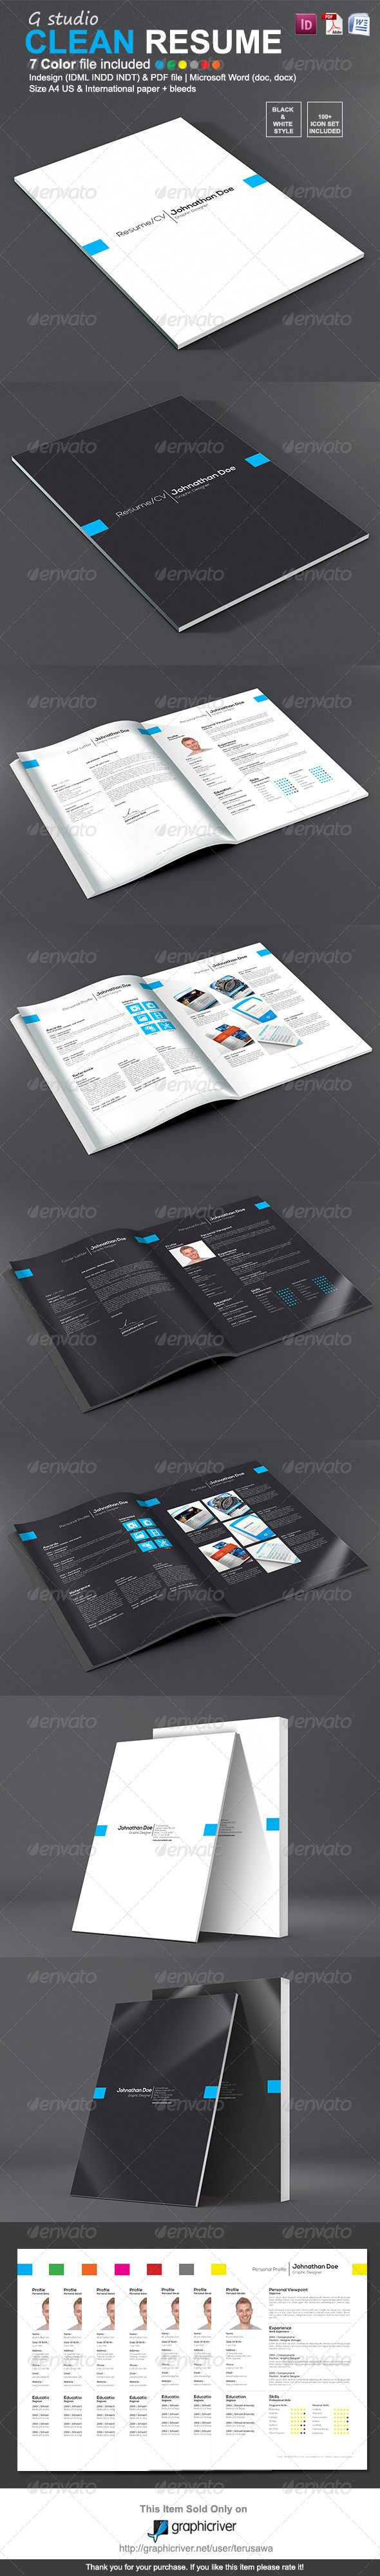 letter format for application%0A Gstudio Clean Resume Template